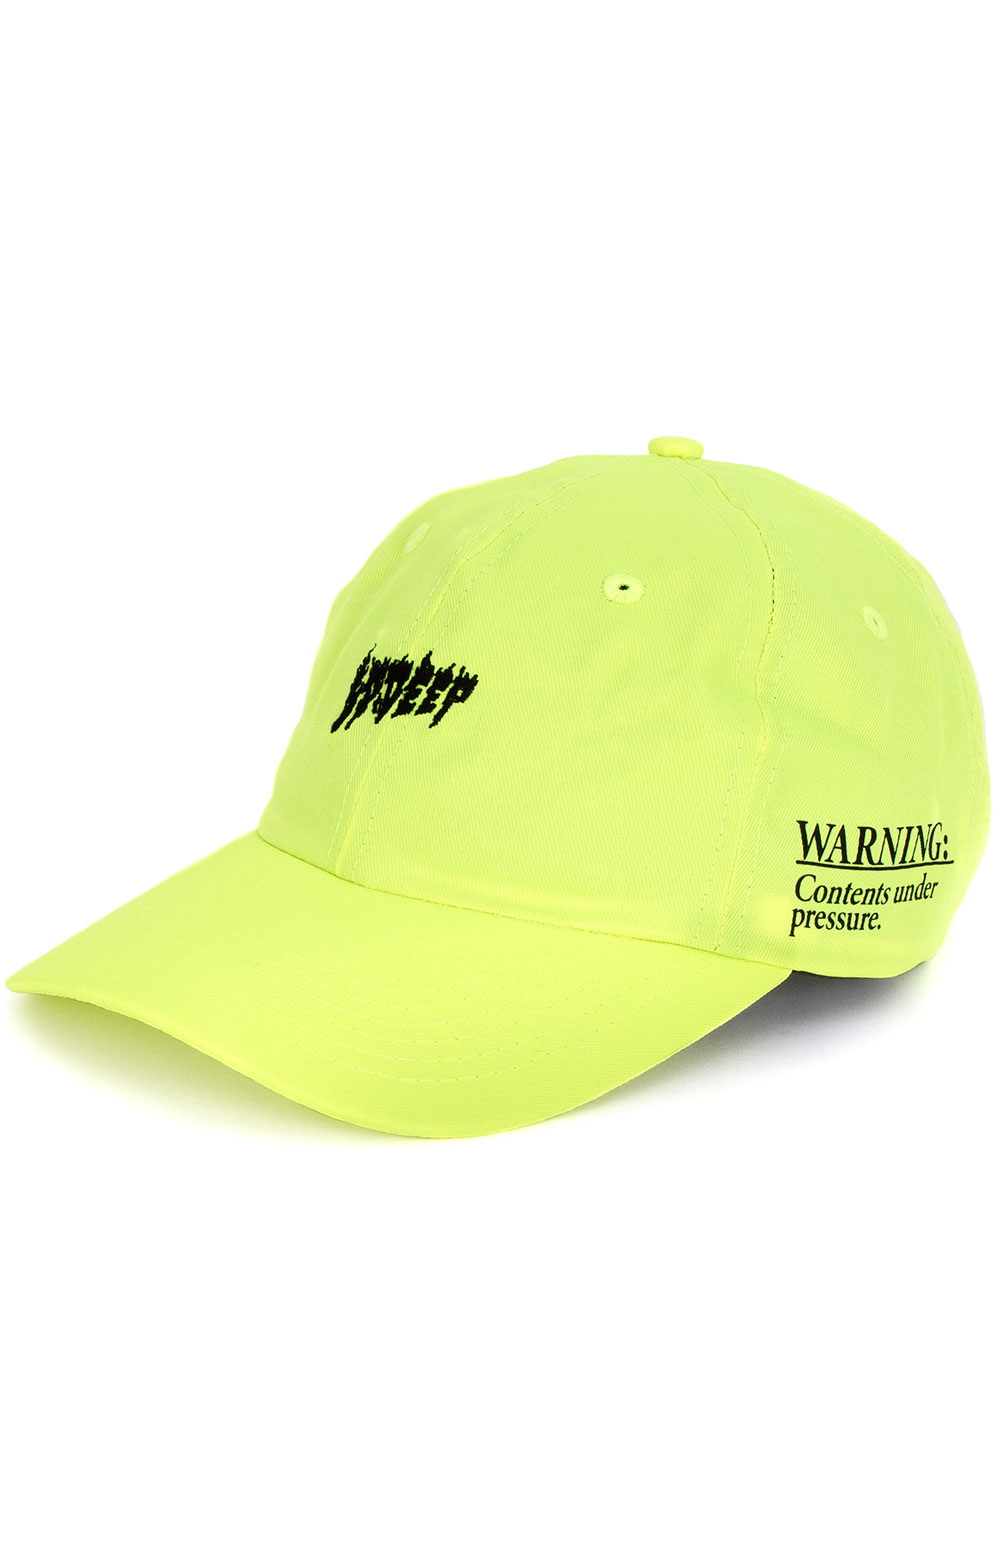 Yoga Flame Dad Hat - Neon Yellow